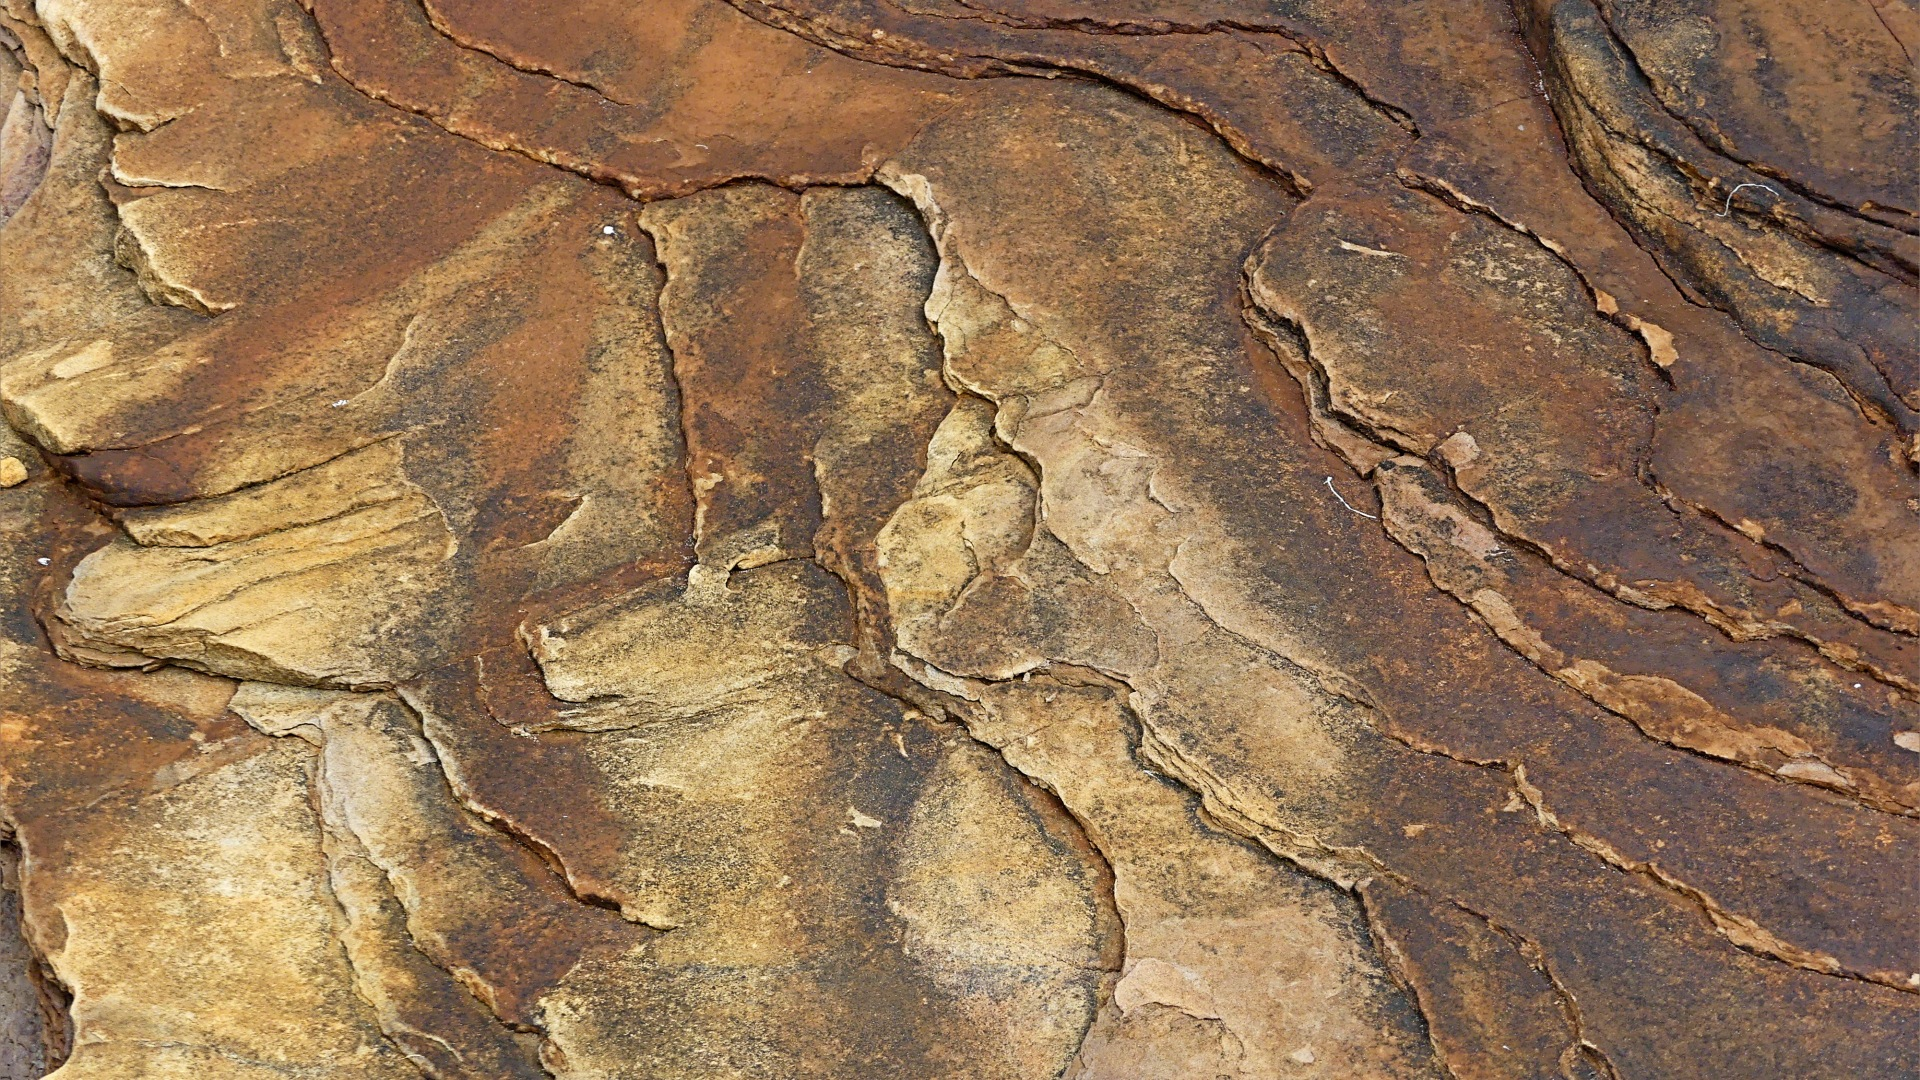 Water-worn sedimentary rock strata on the seashore